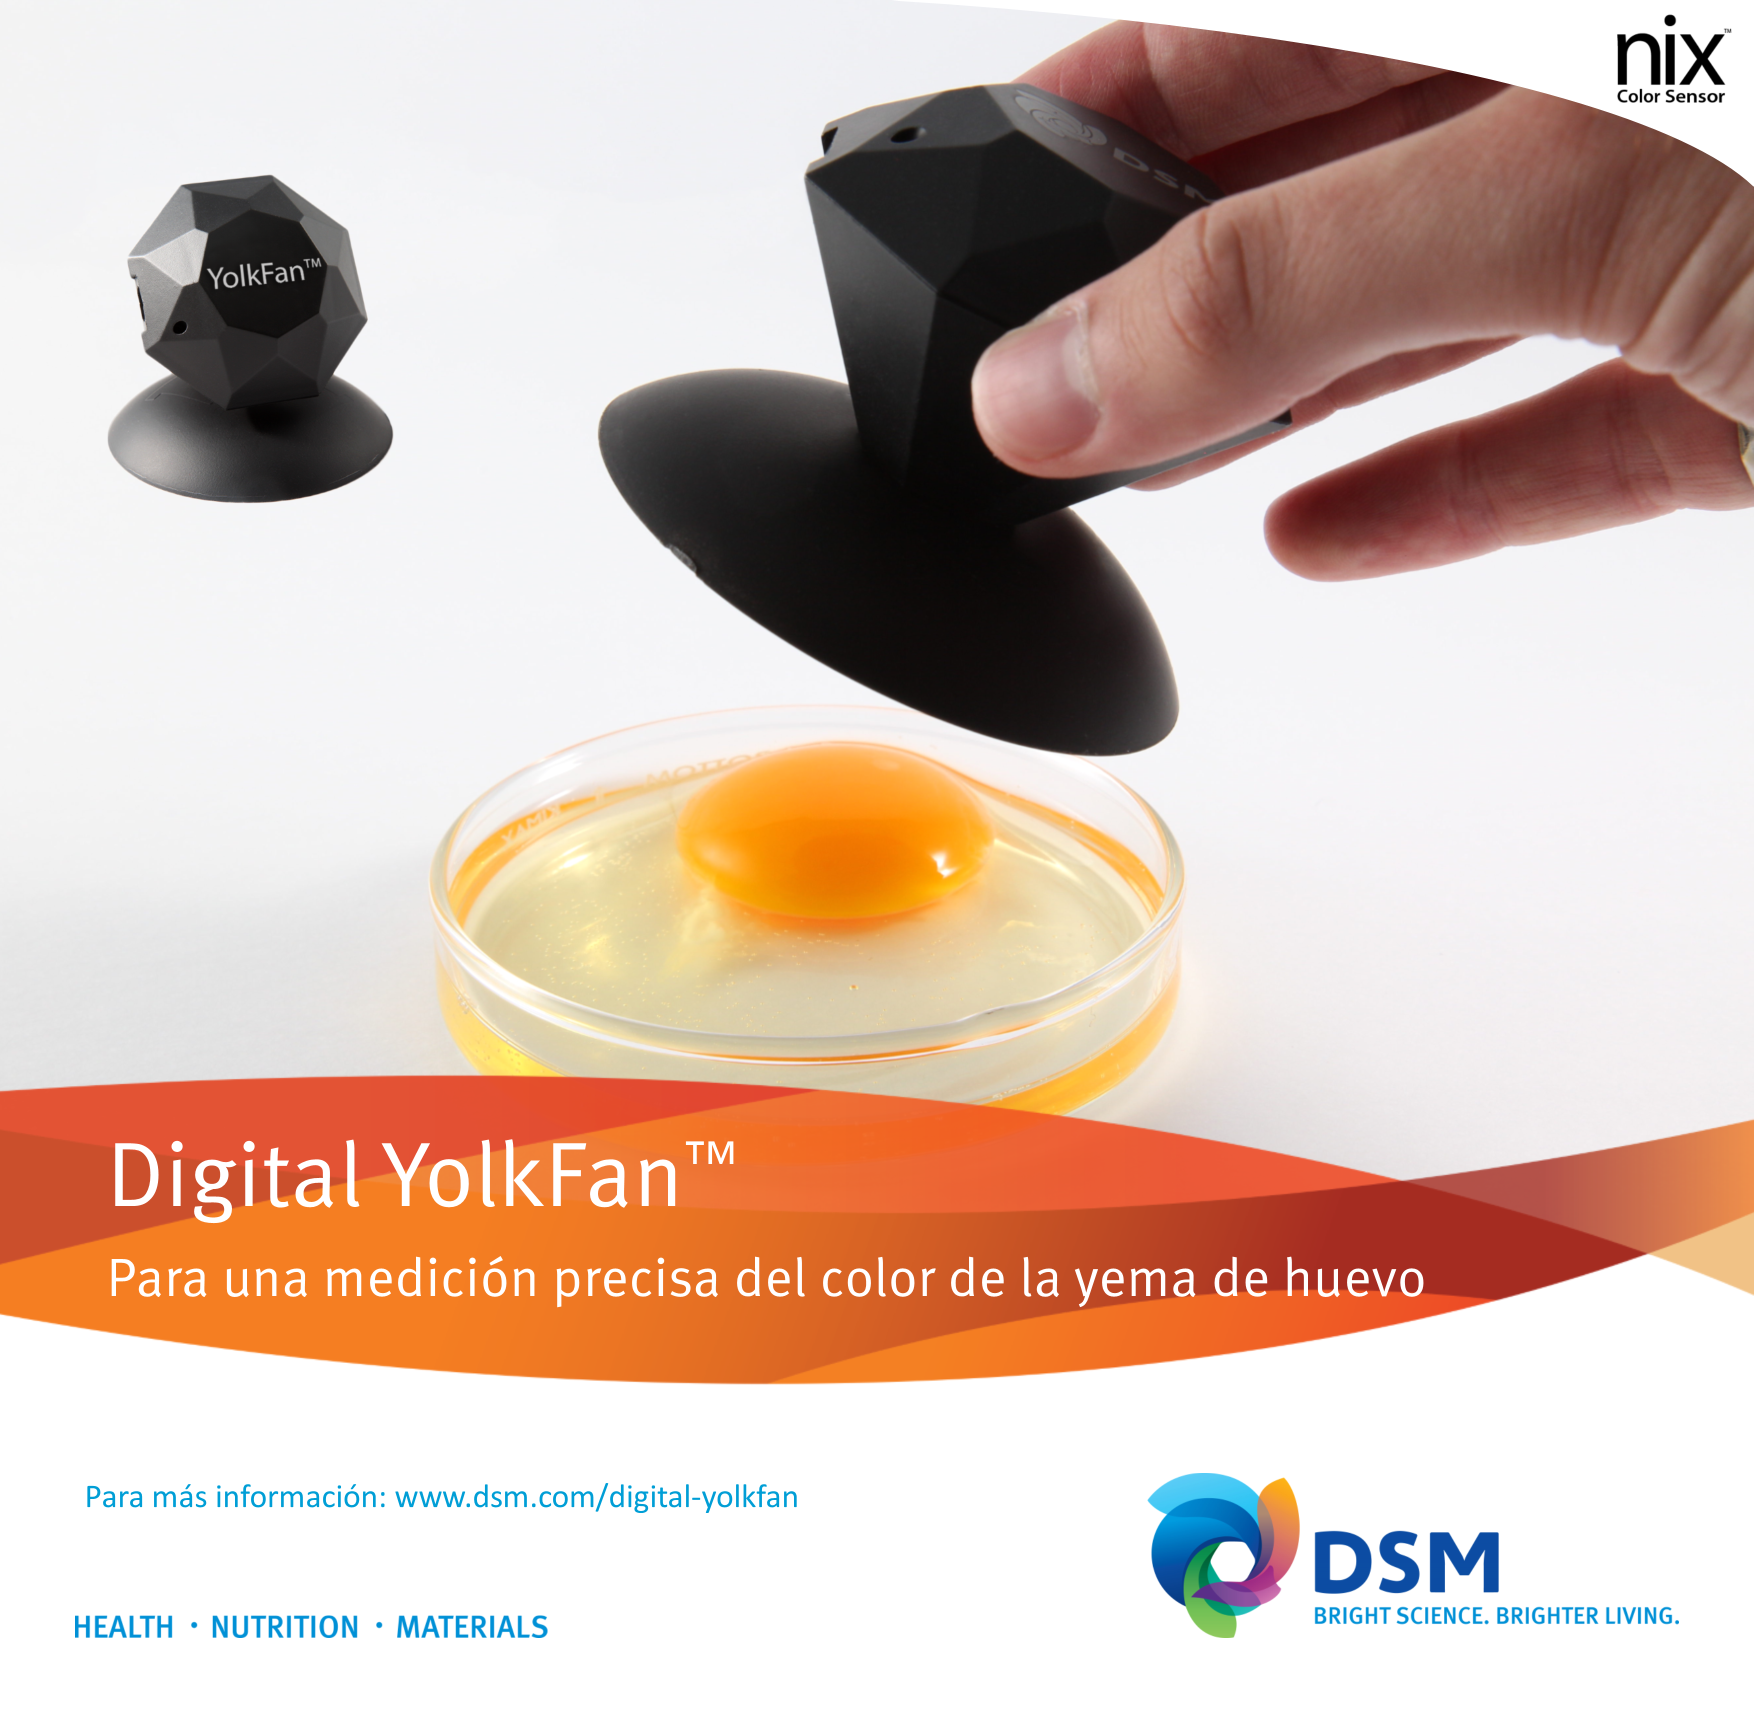 Productos - DSM Digital YolkFan